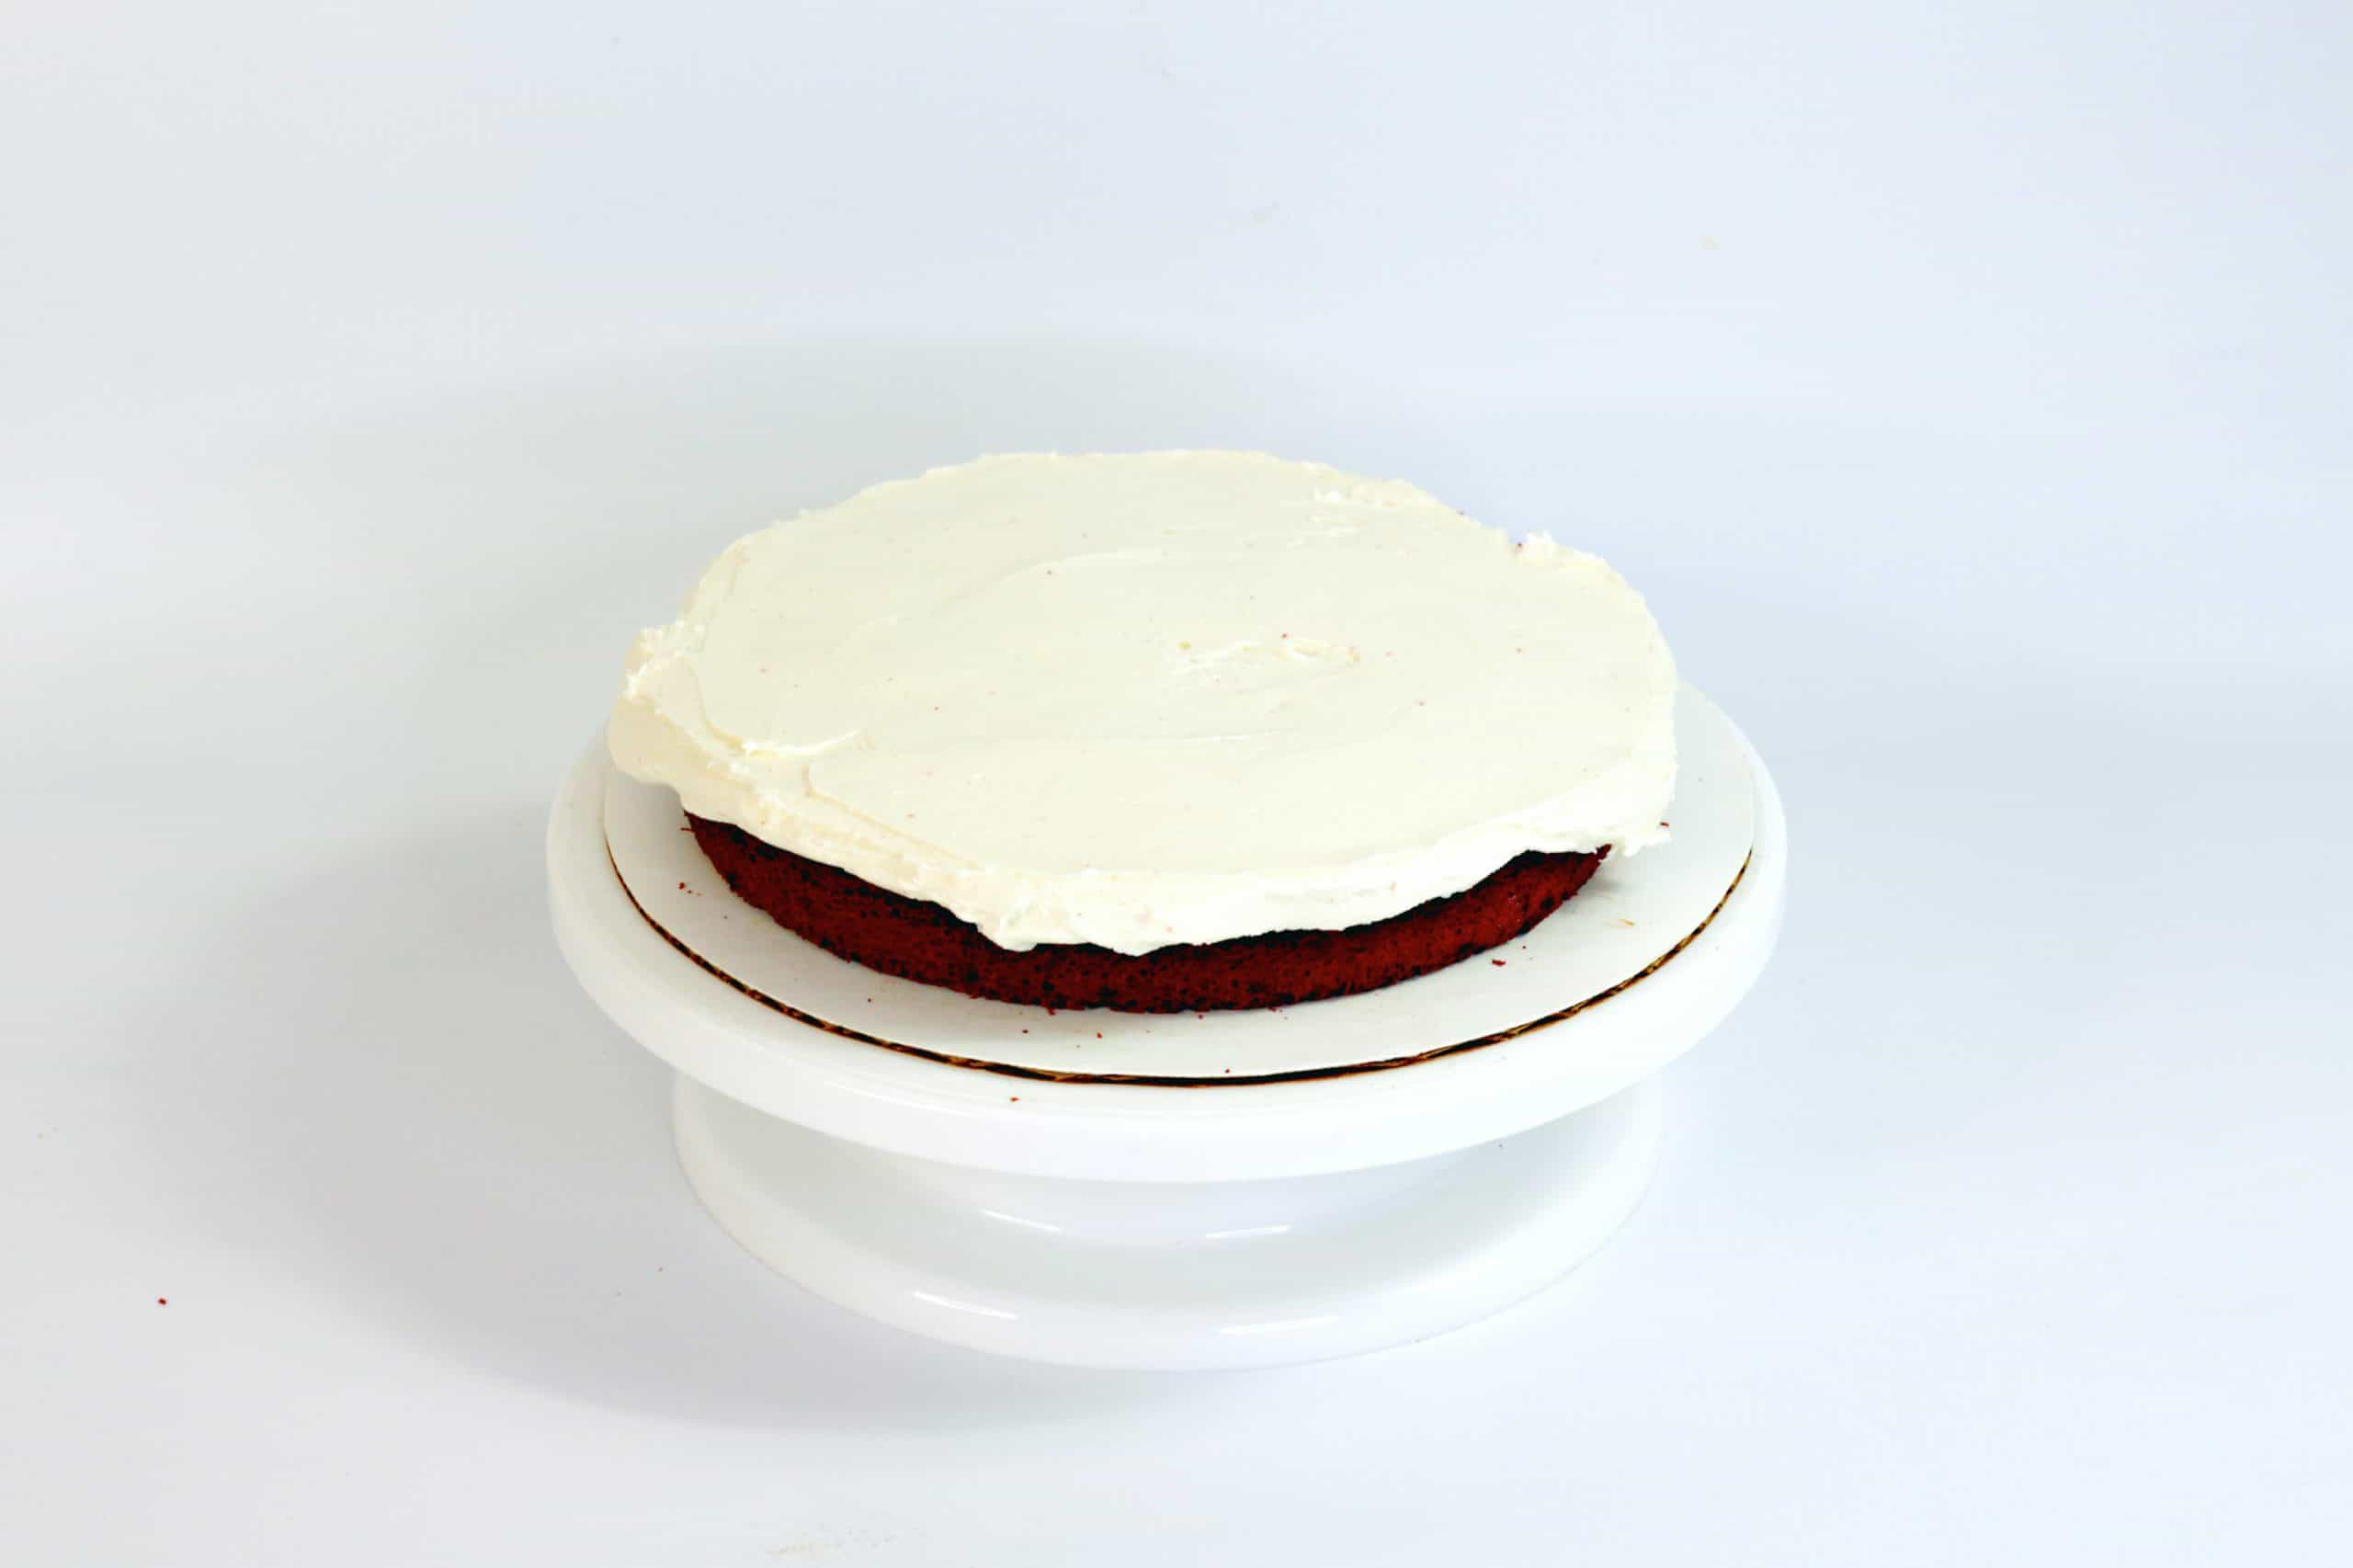 cream cheese frosting on top of red velvet layer